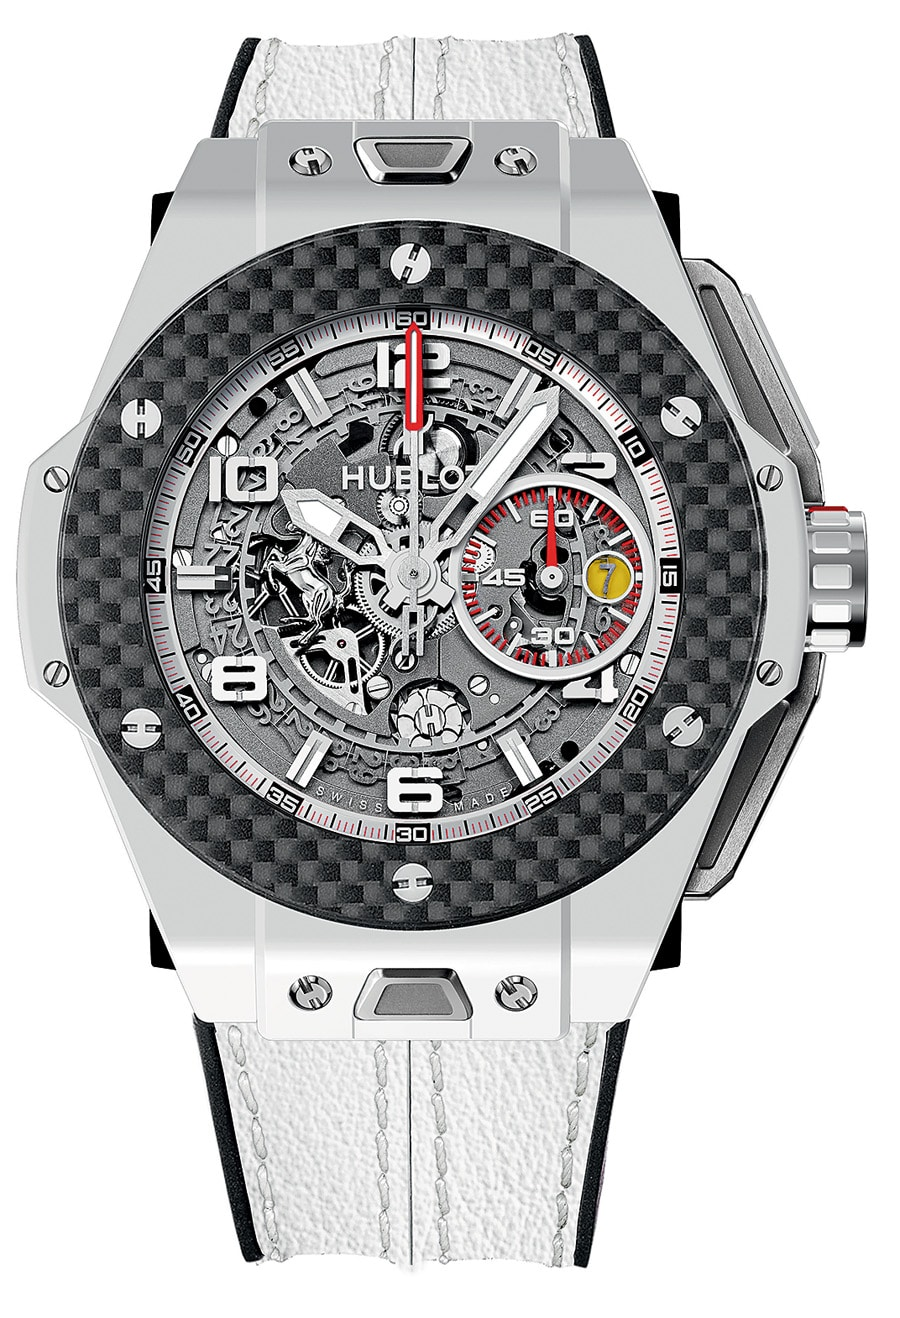 neue uhr big bang ferrari white ceramic carbon. Black Bedroom Furniture Sets. Home Design Ideas